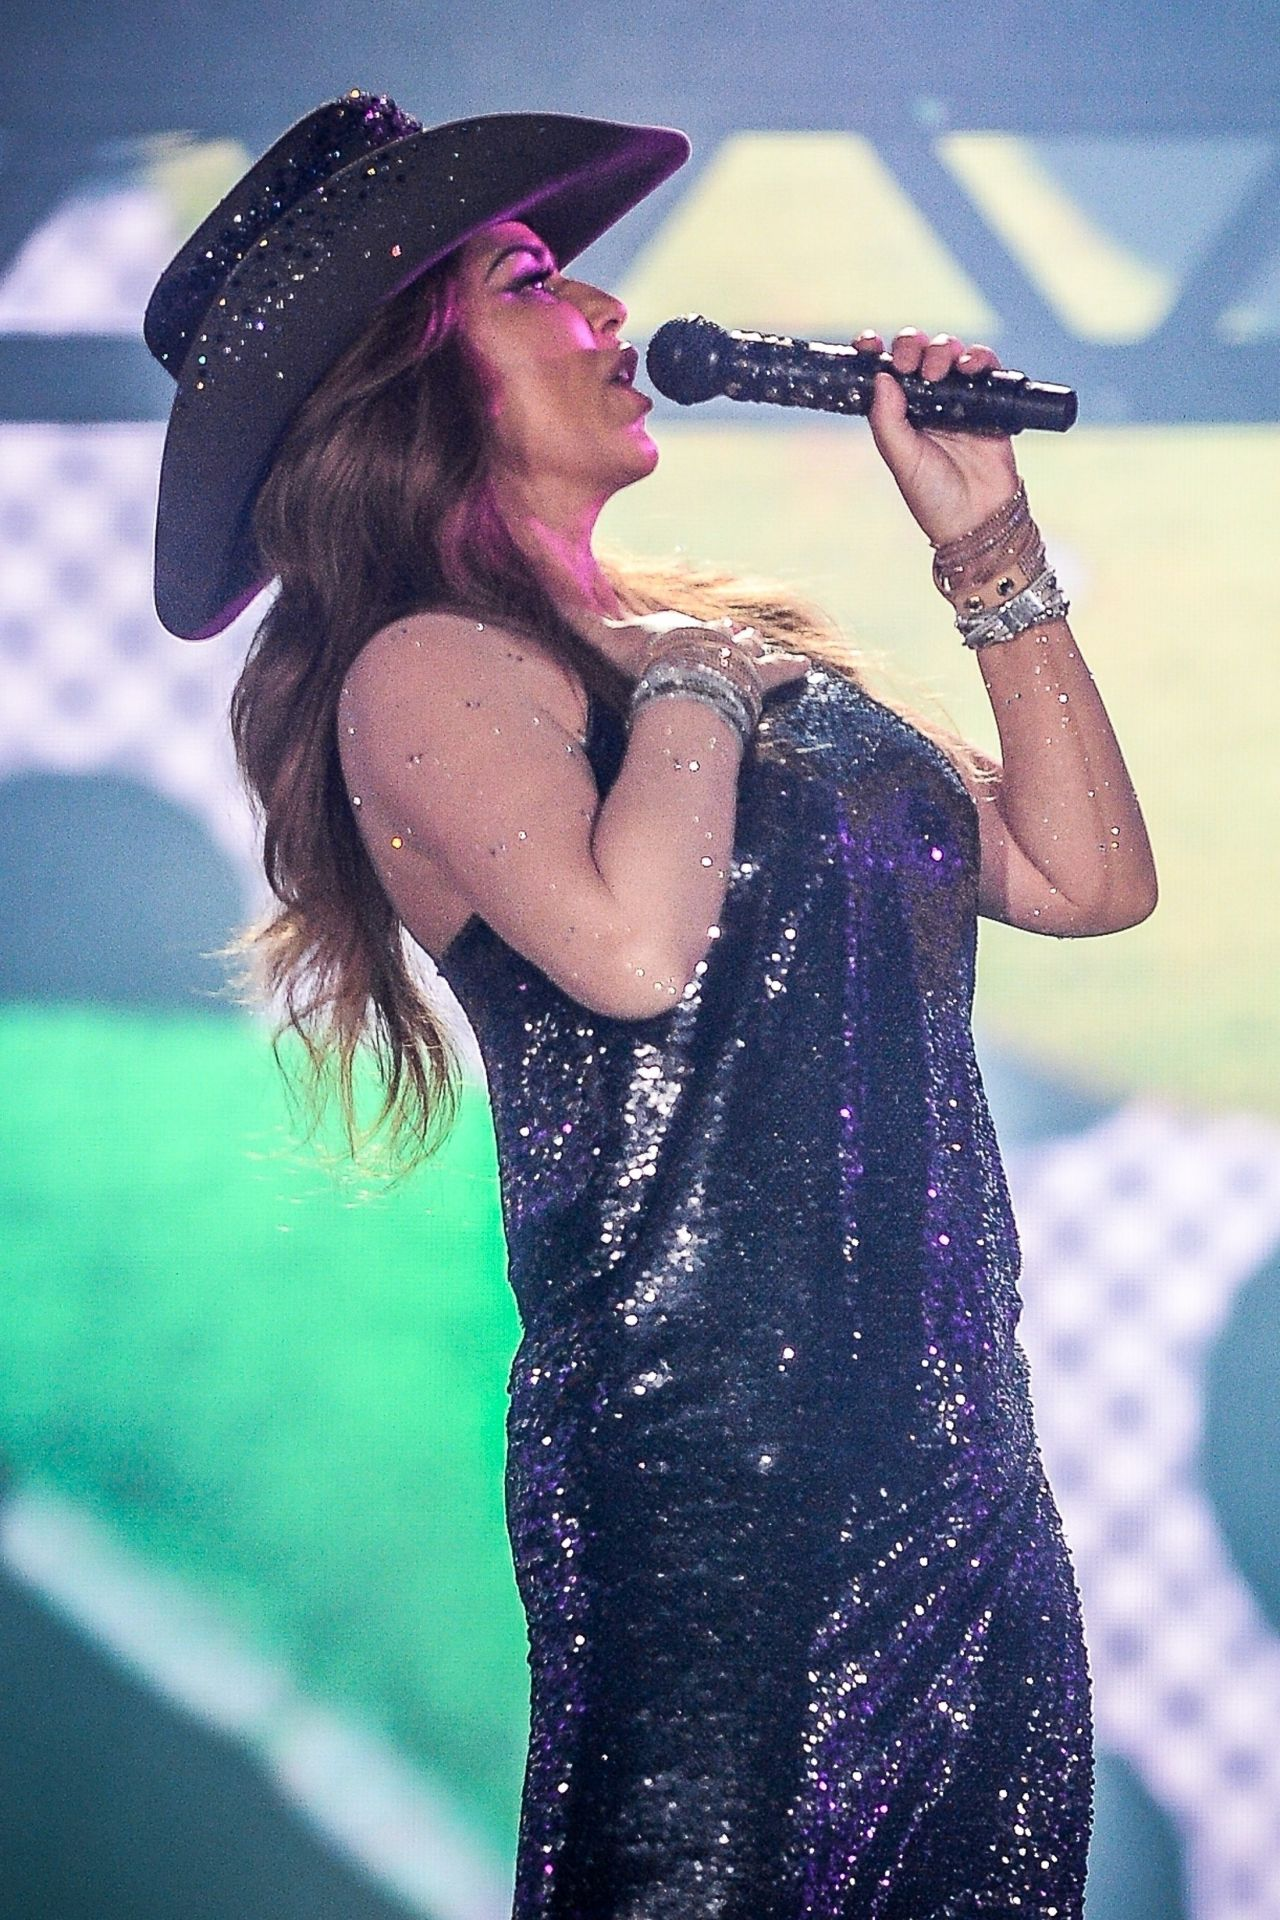 Shania Twain Performs at the Cowboy Festival of Barretos in Sao Paulo 08192018